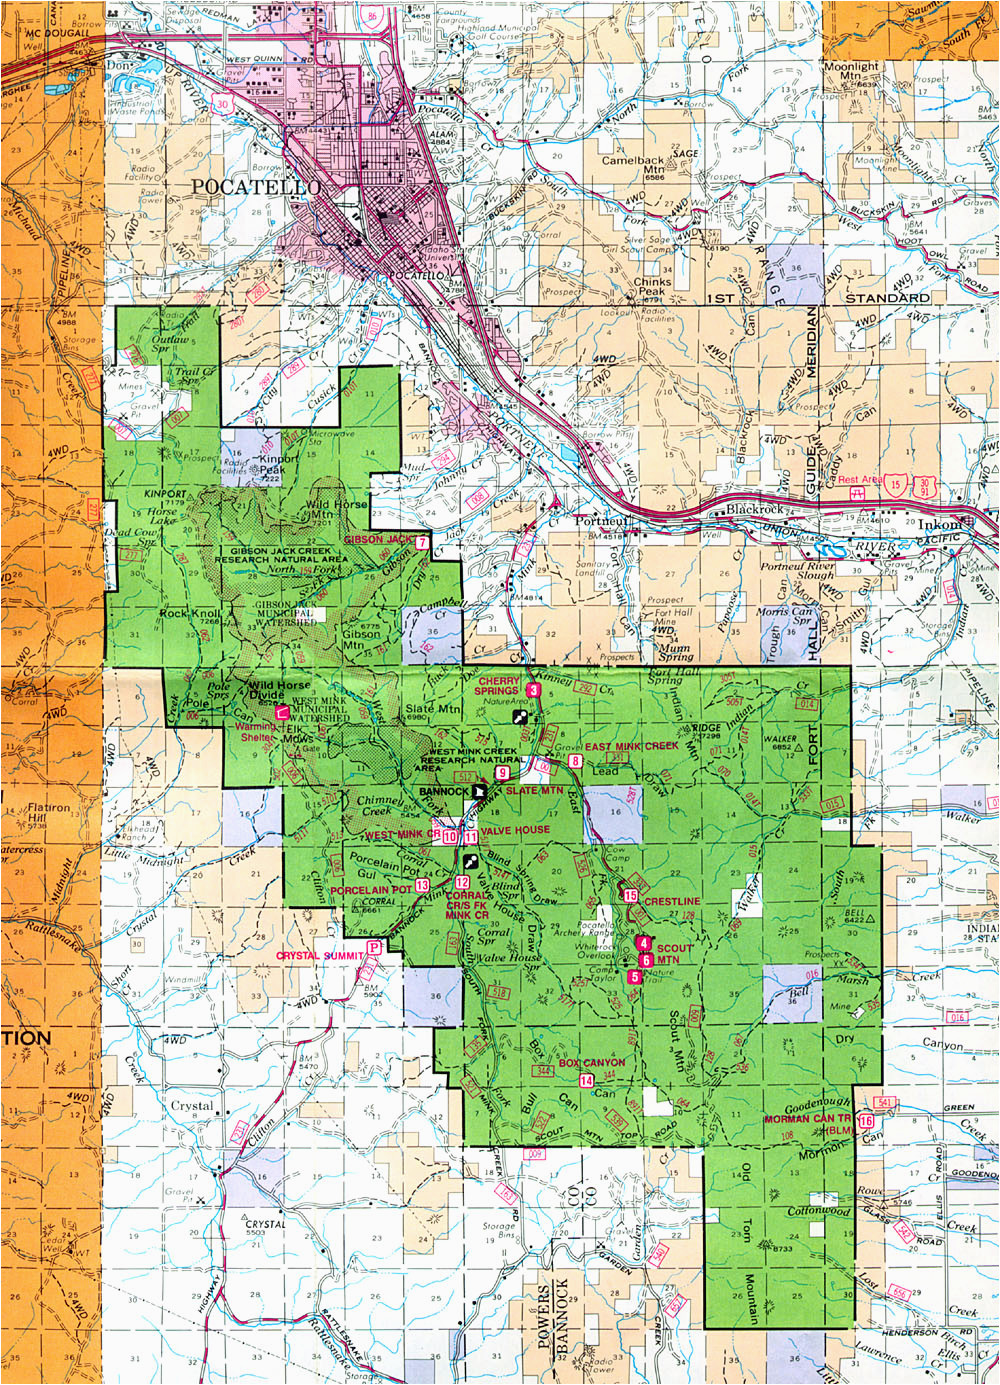 us forest service maps inspirational idaho forest map bnhspine